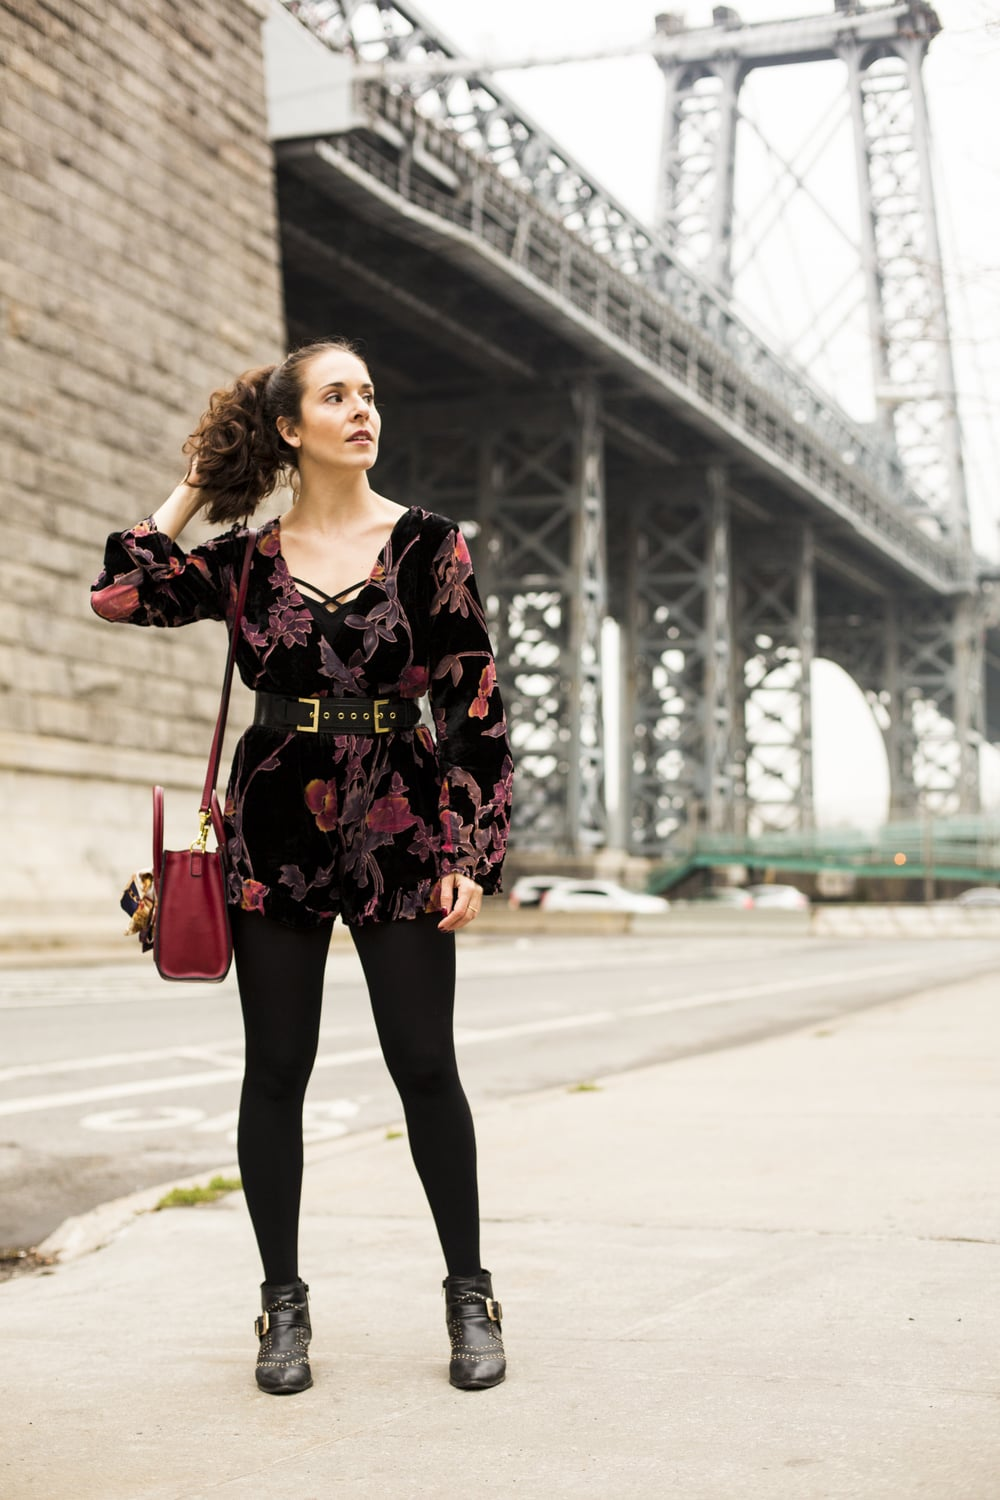 Velvet 12th Tribe romper and Celine Nano Crossbody bag shot in LES Manhattan by Francisco Graciano